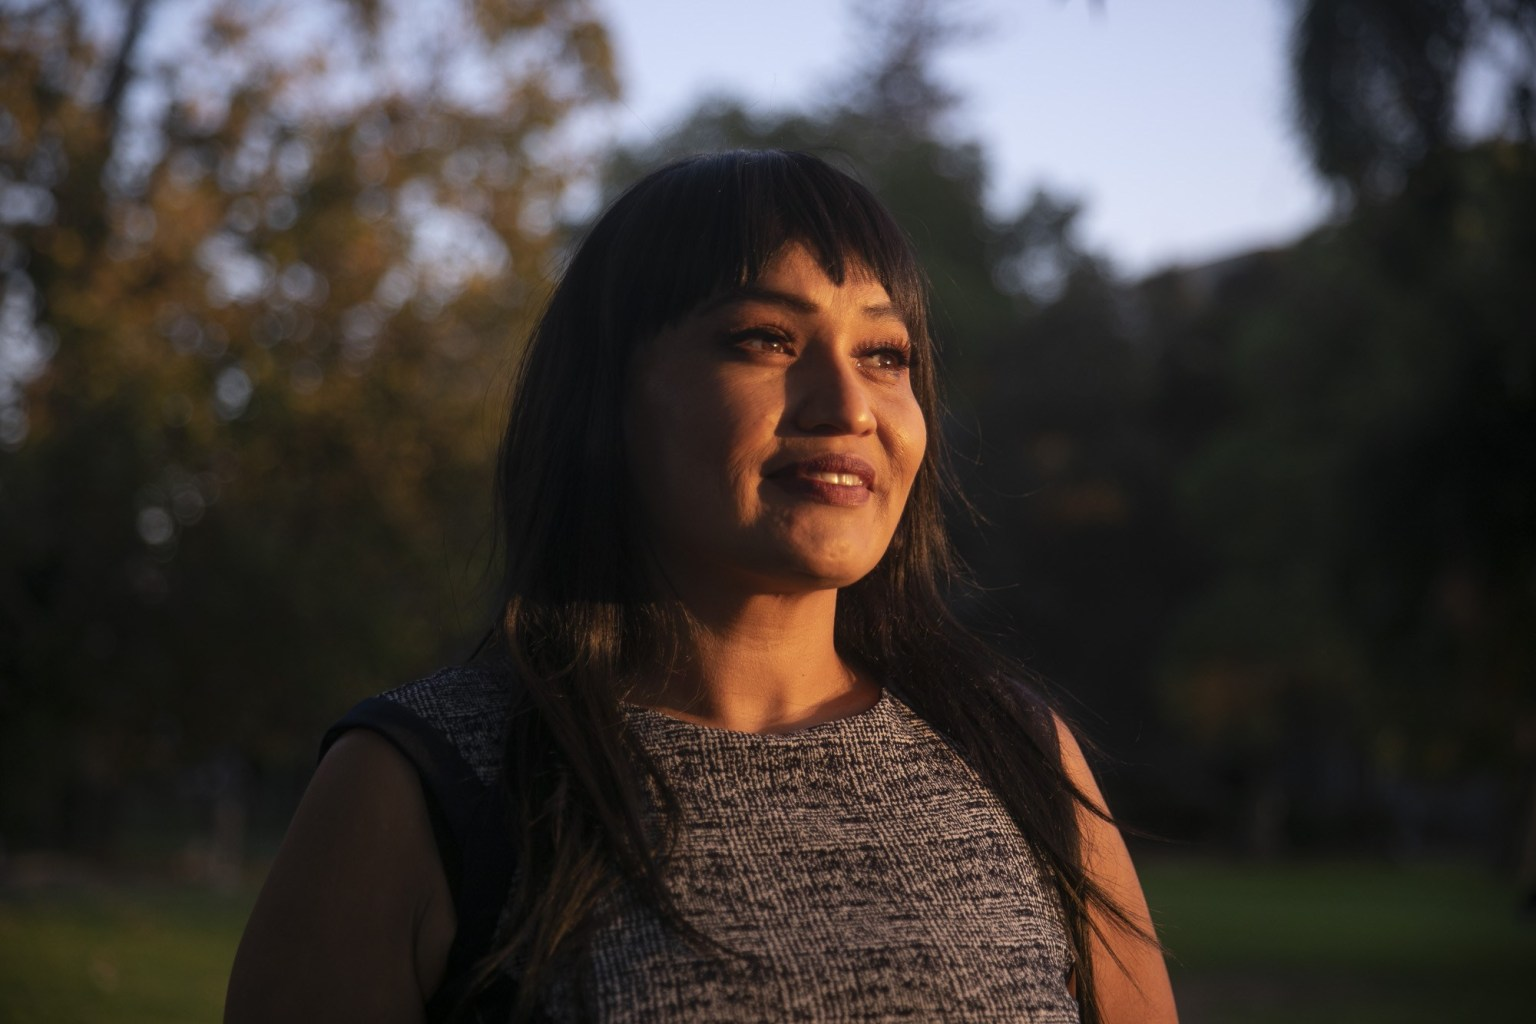 www.kpbs.org: Affirmative Action Ballot Measure Fails, But These Students Are Still Fighting To Diversify Their Universities